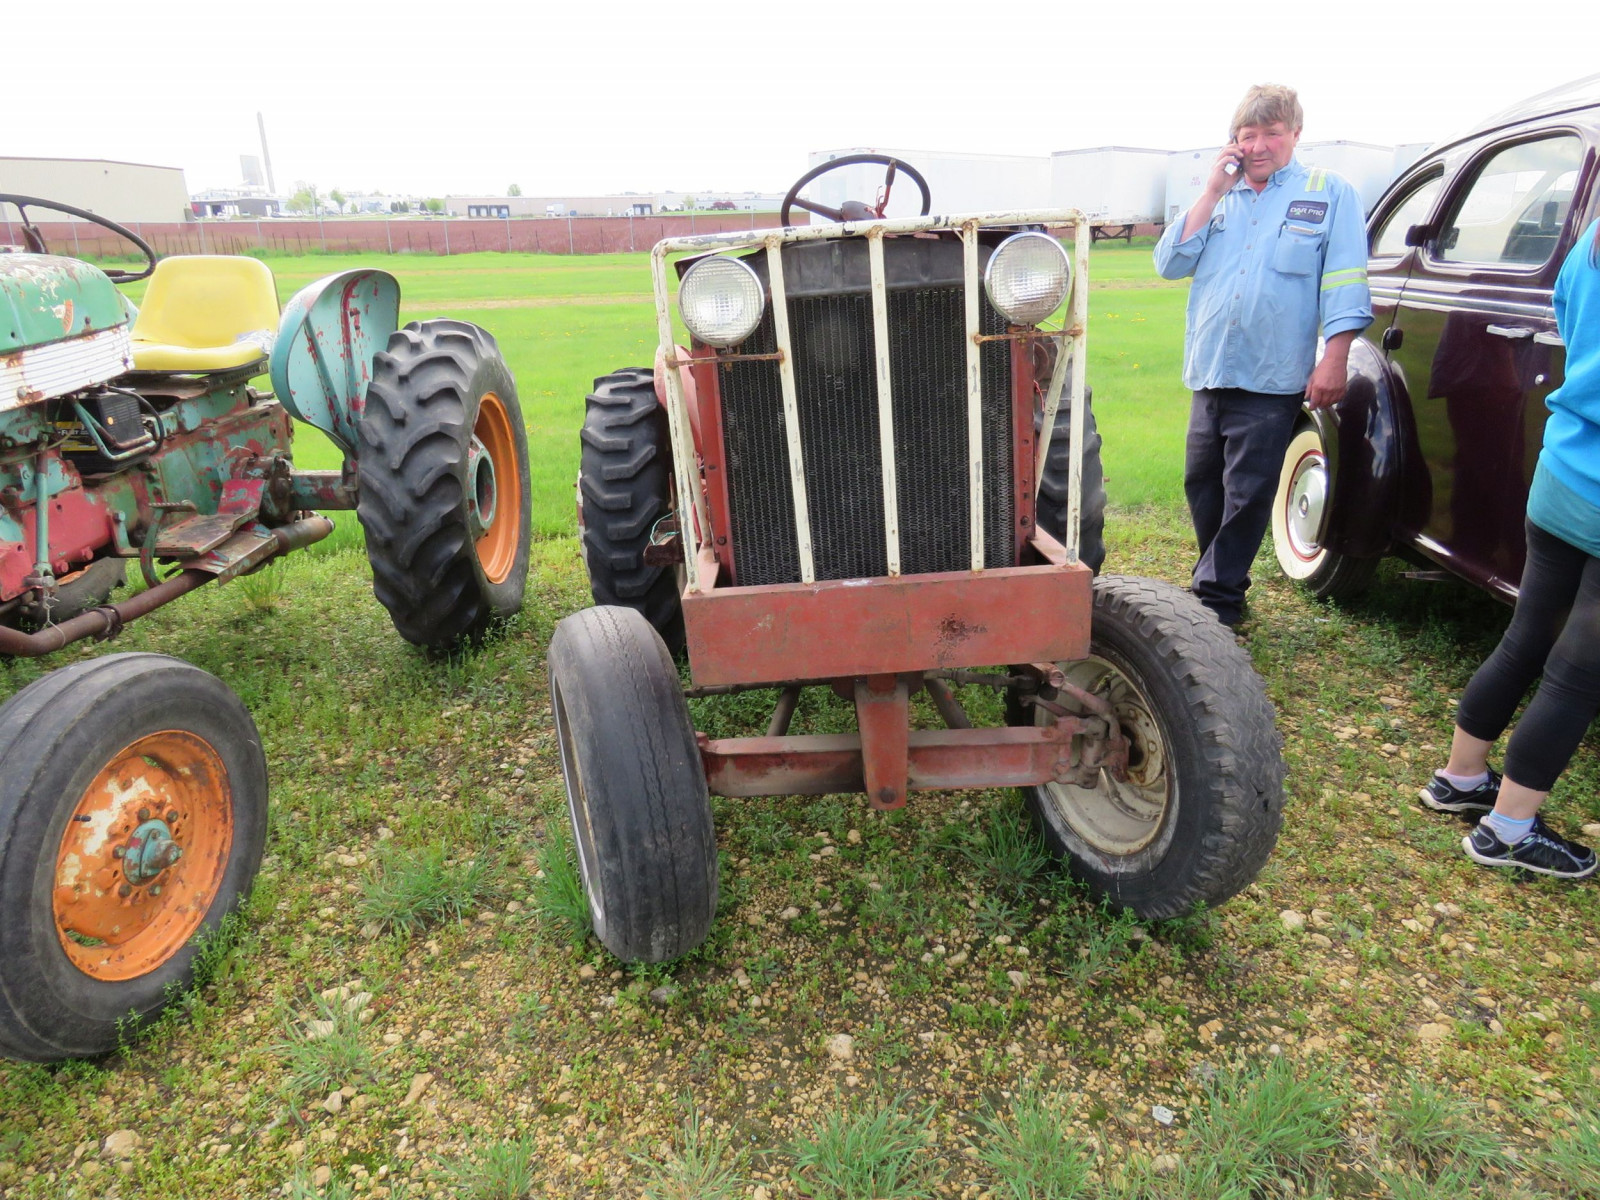 Homemade tractor - Image 2